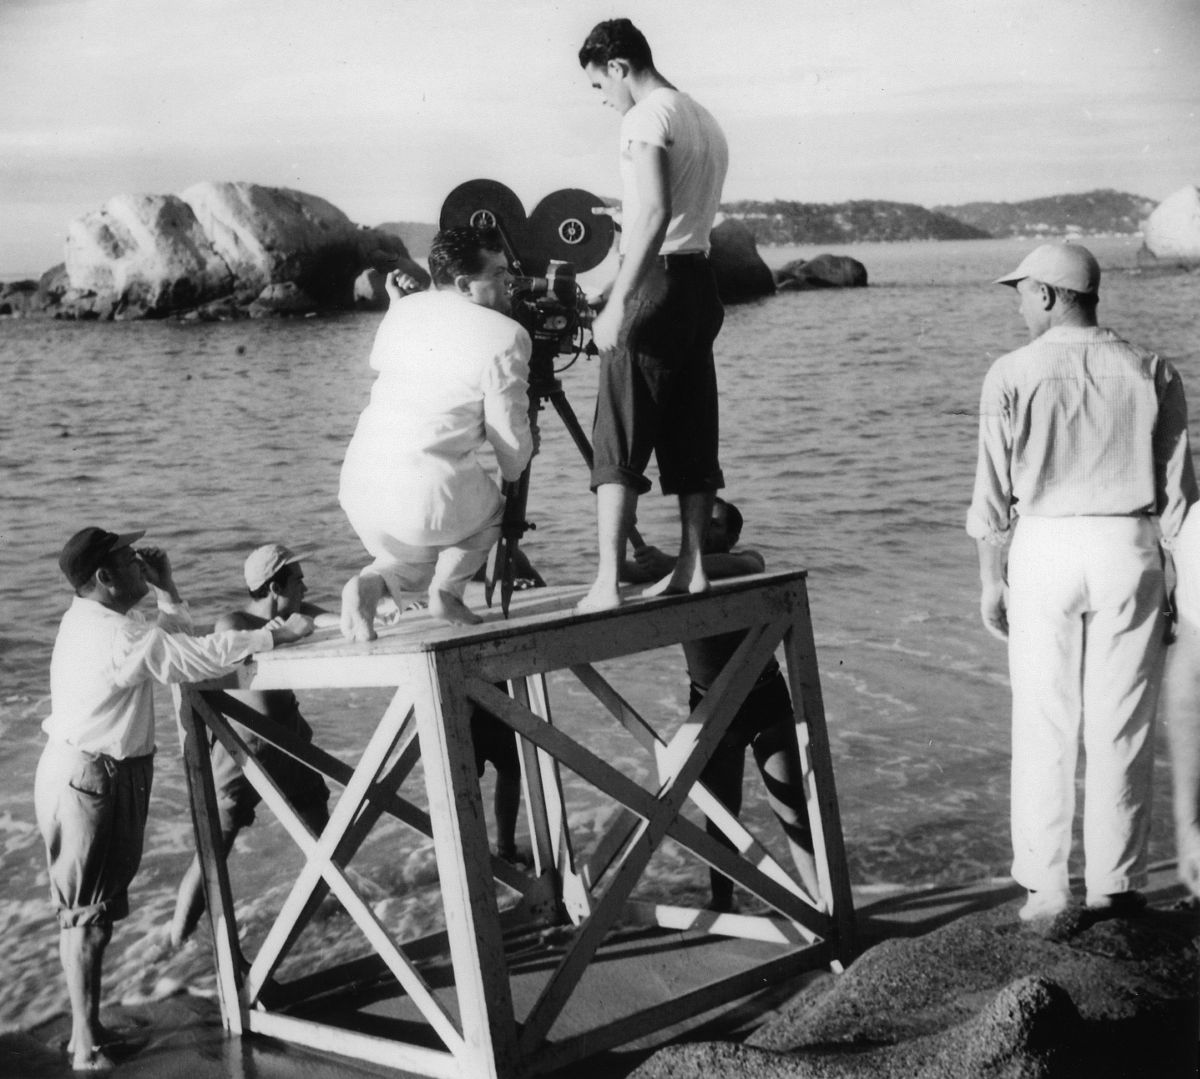 Welles examines the placement of the camera on a platform. At his side is camera assistant Richard H. Kline.